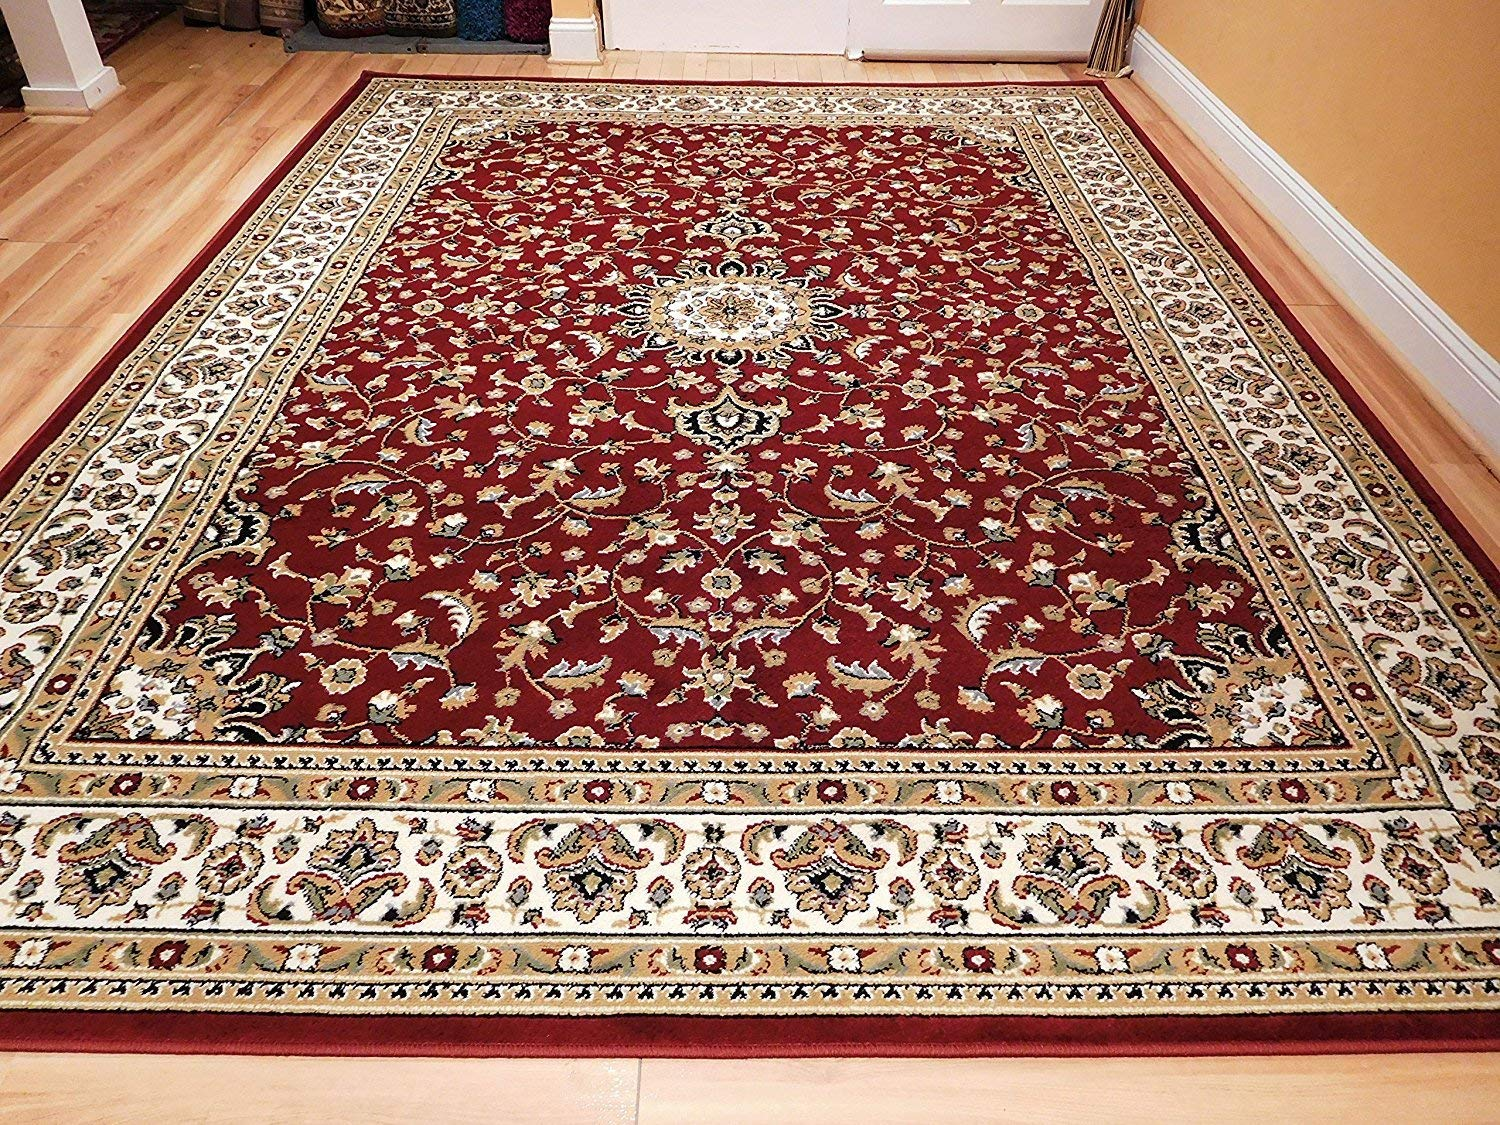 amazon.com: large 8x11 area rug for living room red 8x10 traditional rug ADNTEIH